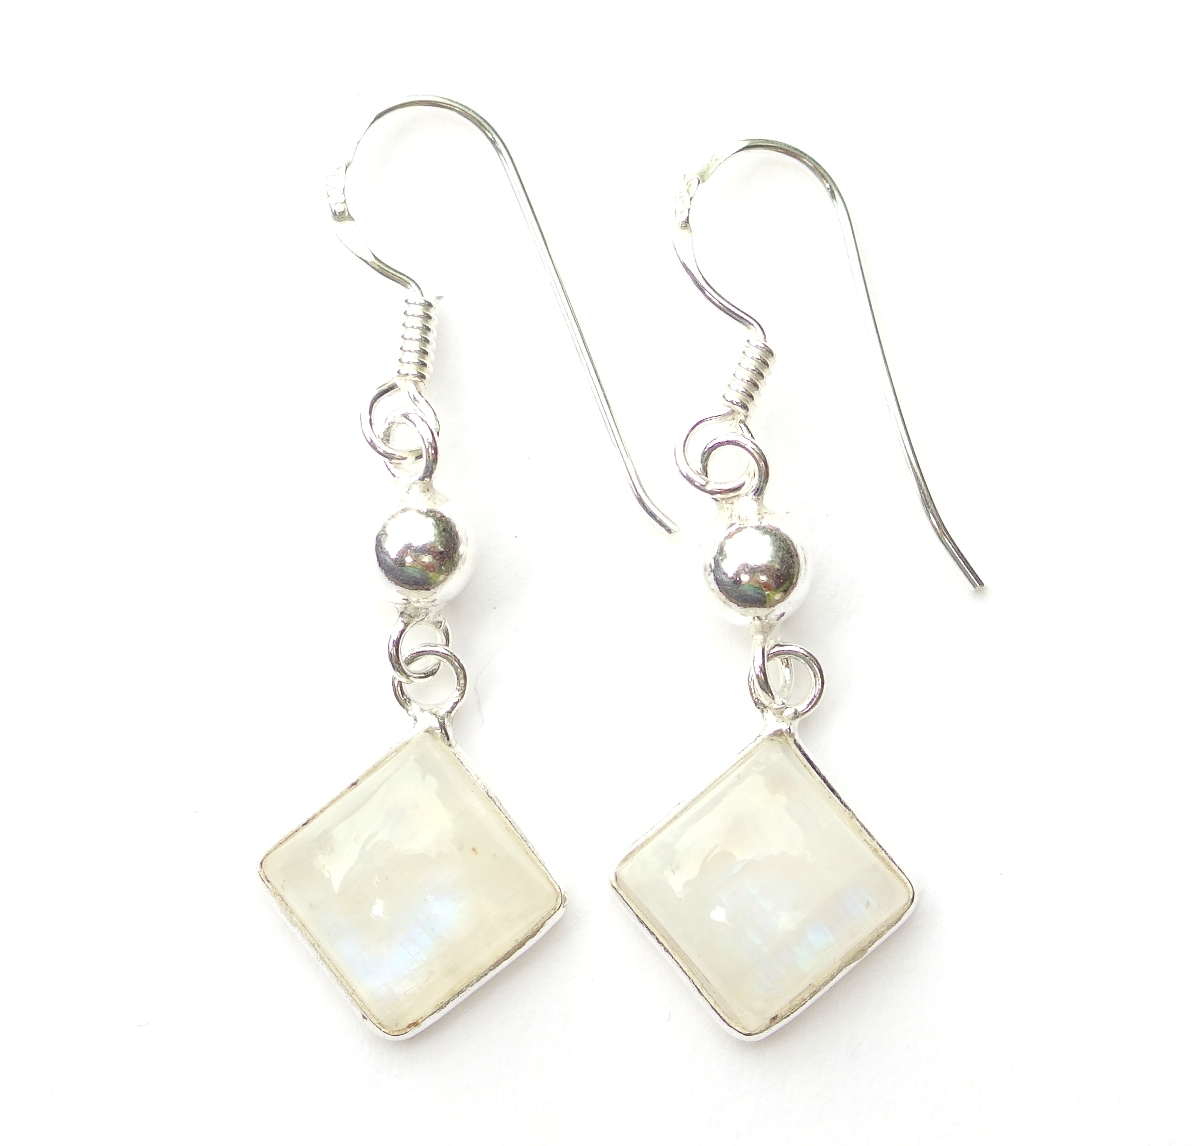 Rainbow Moonstone Doiamond Hanging Earrings